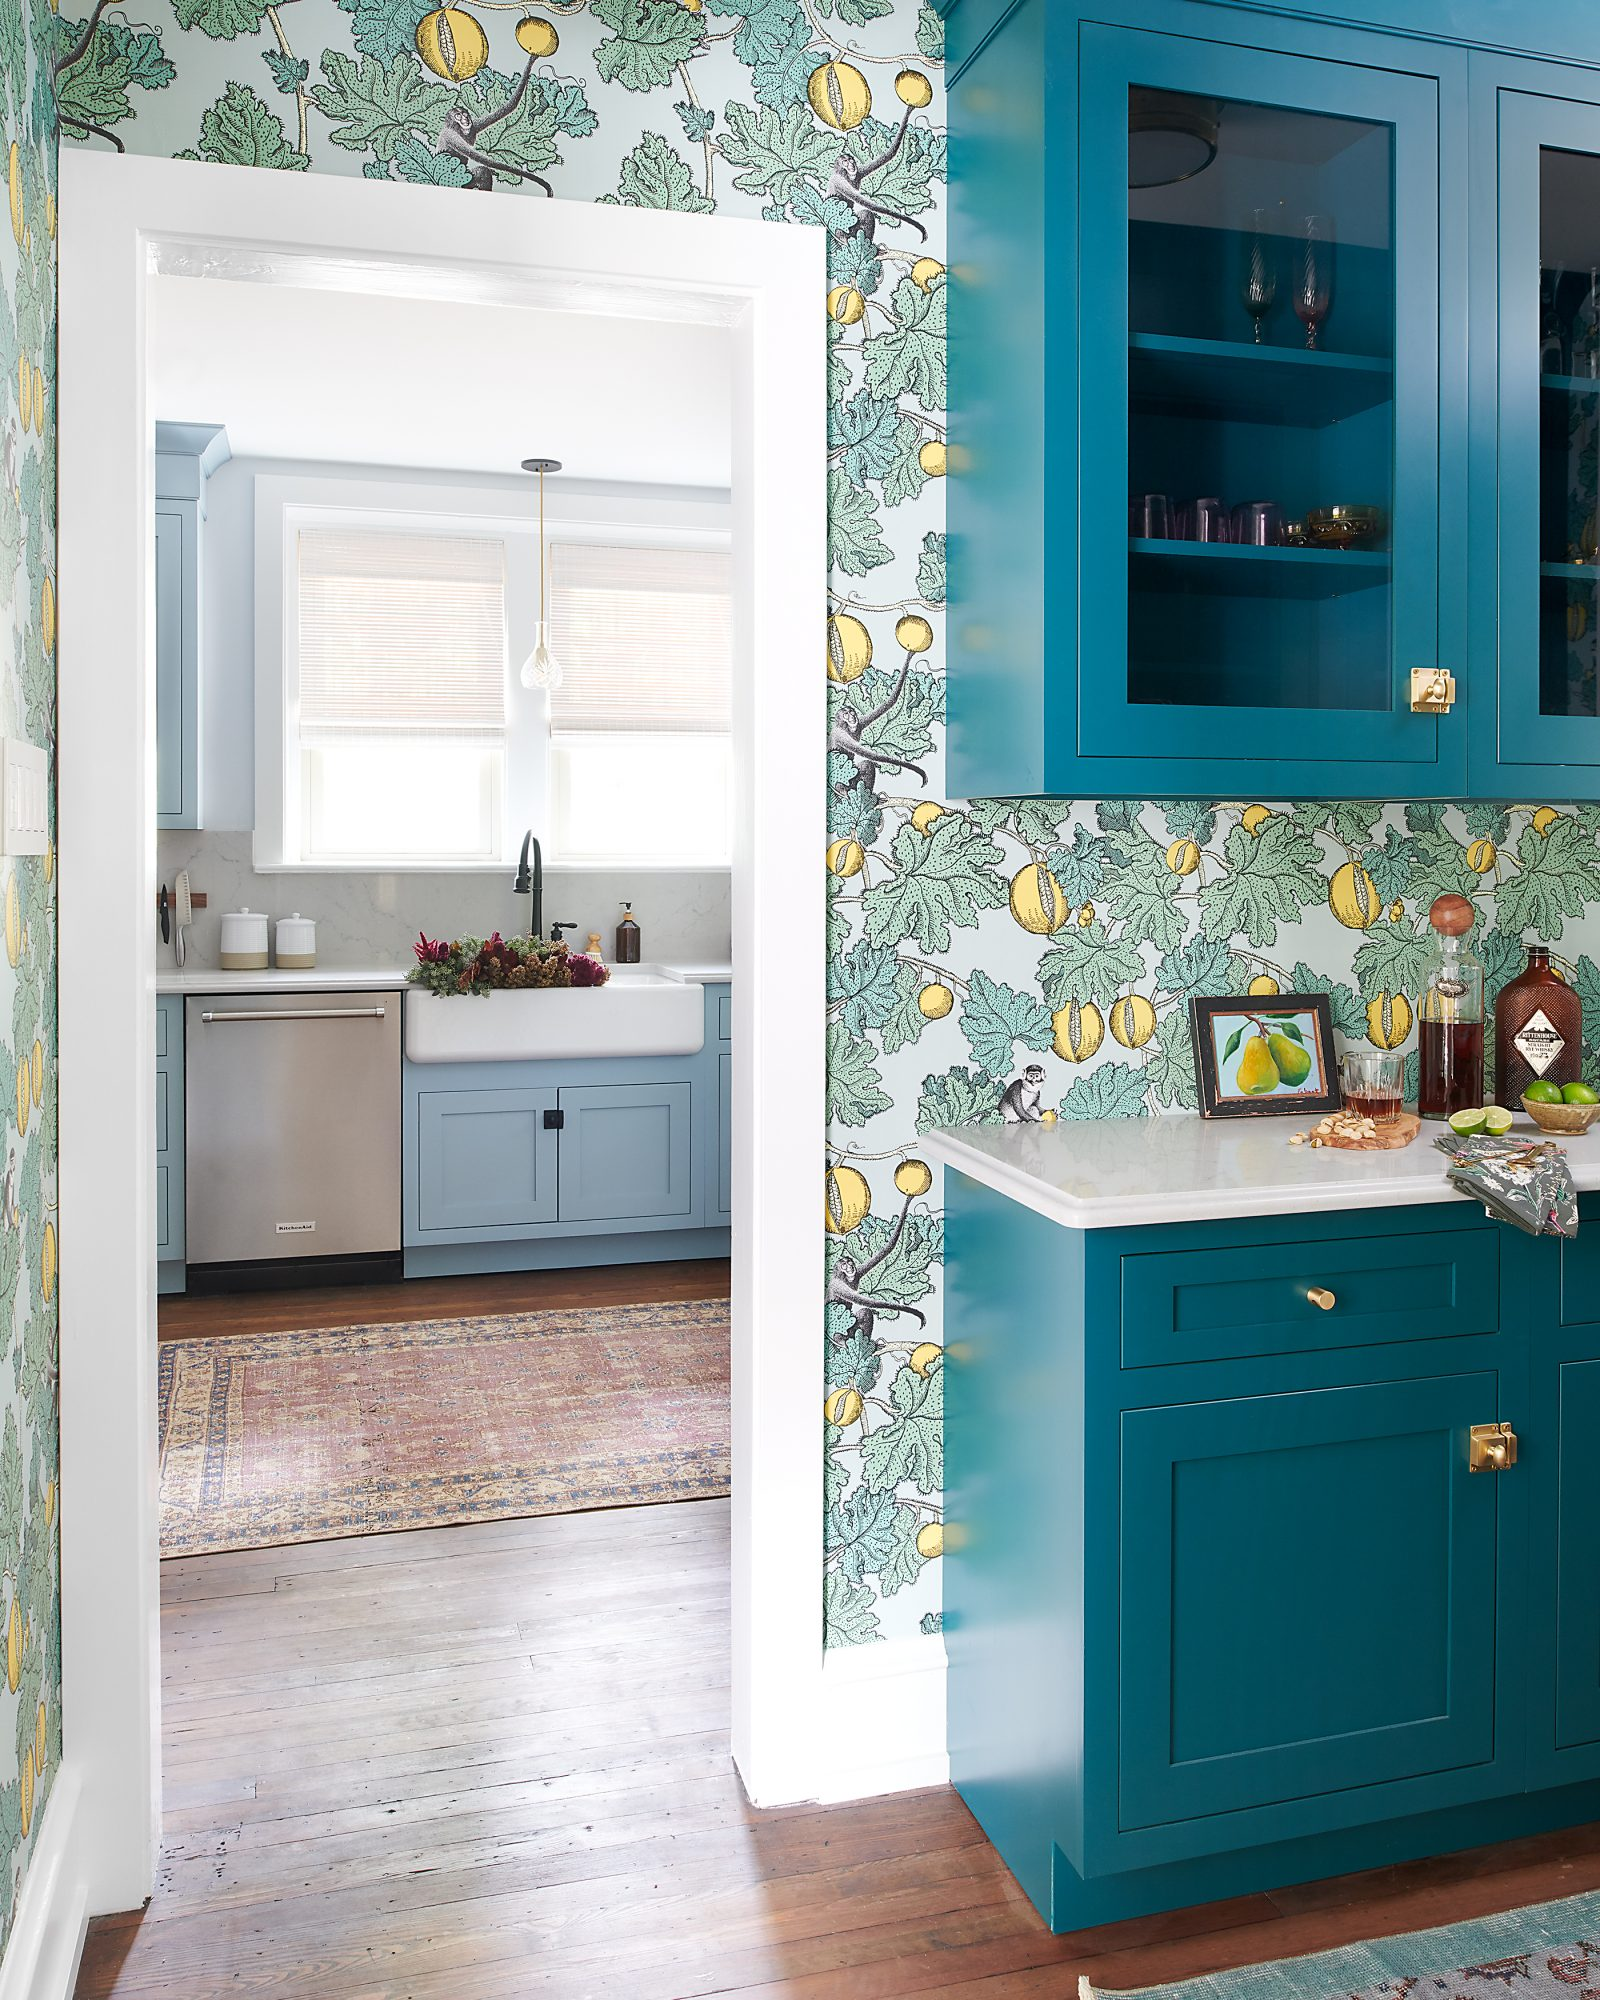 powder blue kitchen with floral wall paper